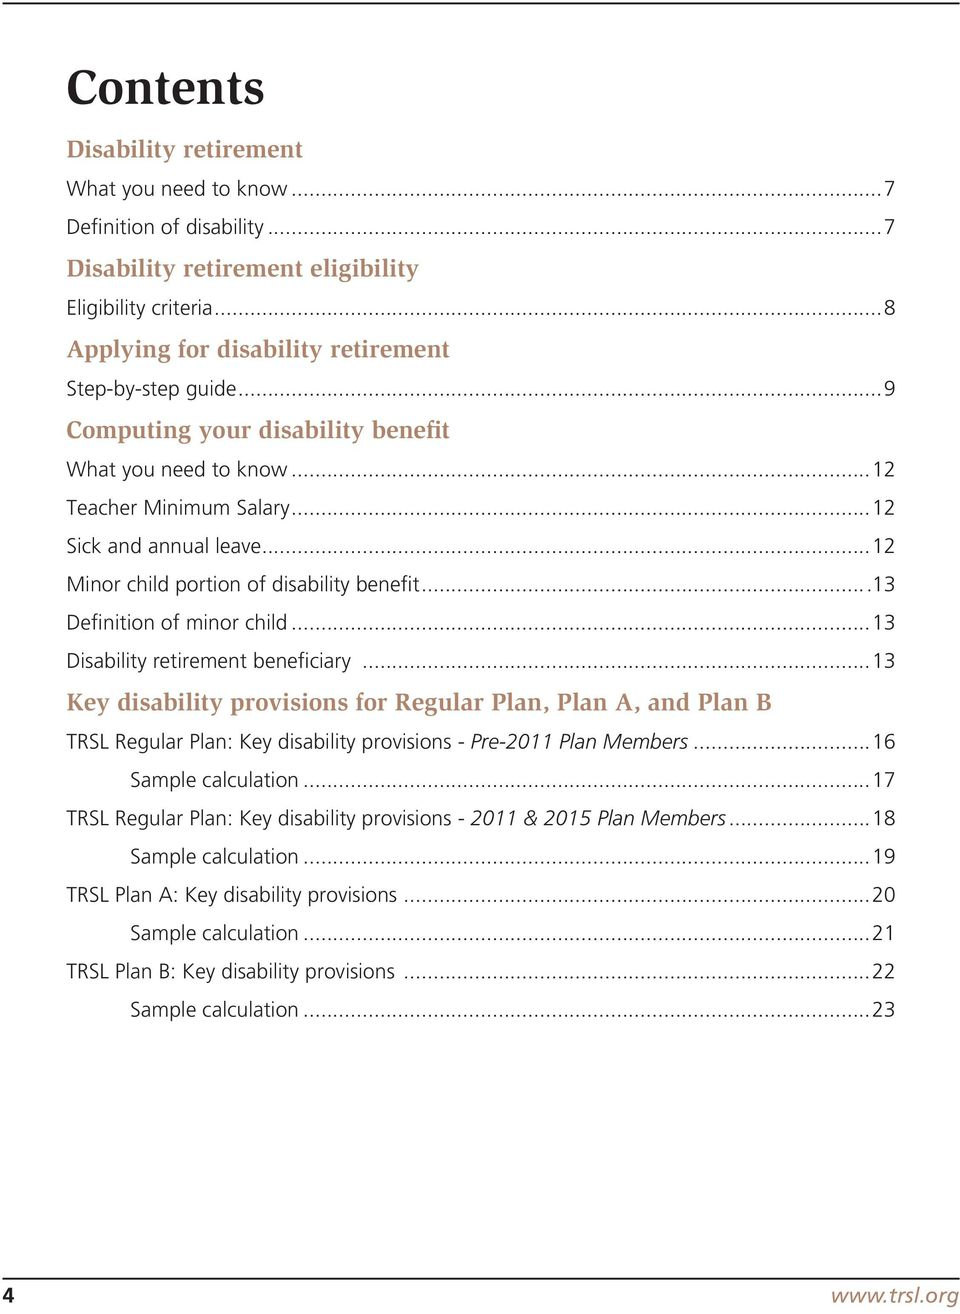 ..13 Disability retirement beneficiary...13 Key disability provisions for Regular Plan, Plan A, and Plan B TRSL Regular Plan: Key disability provisions - Pre-2011 Plan Members...16 Sample calculation.